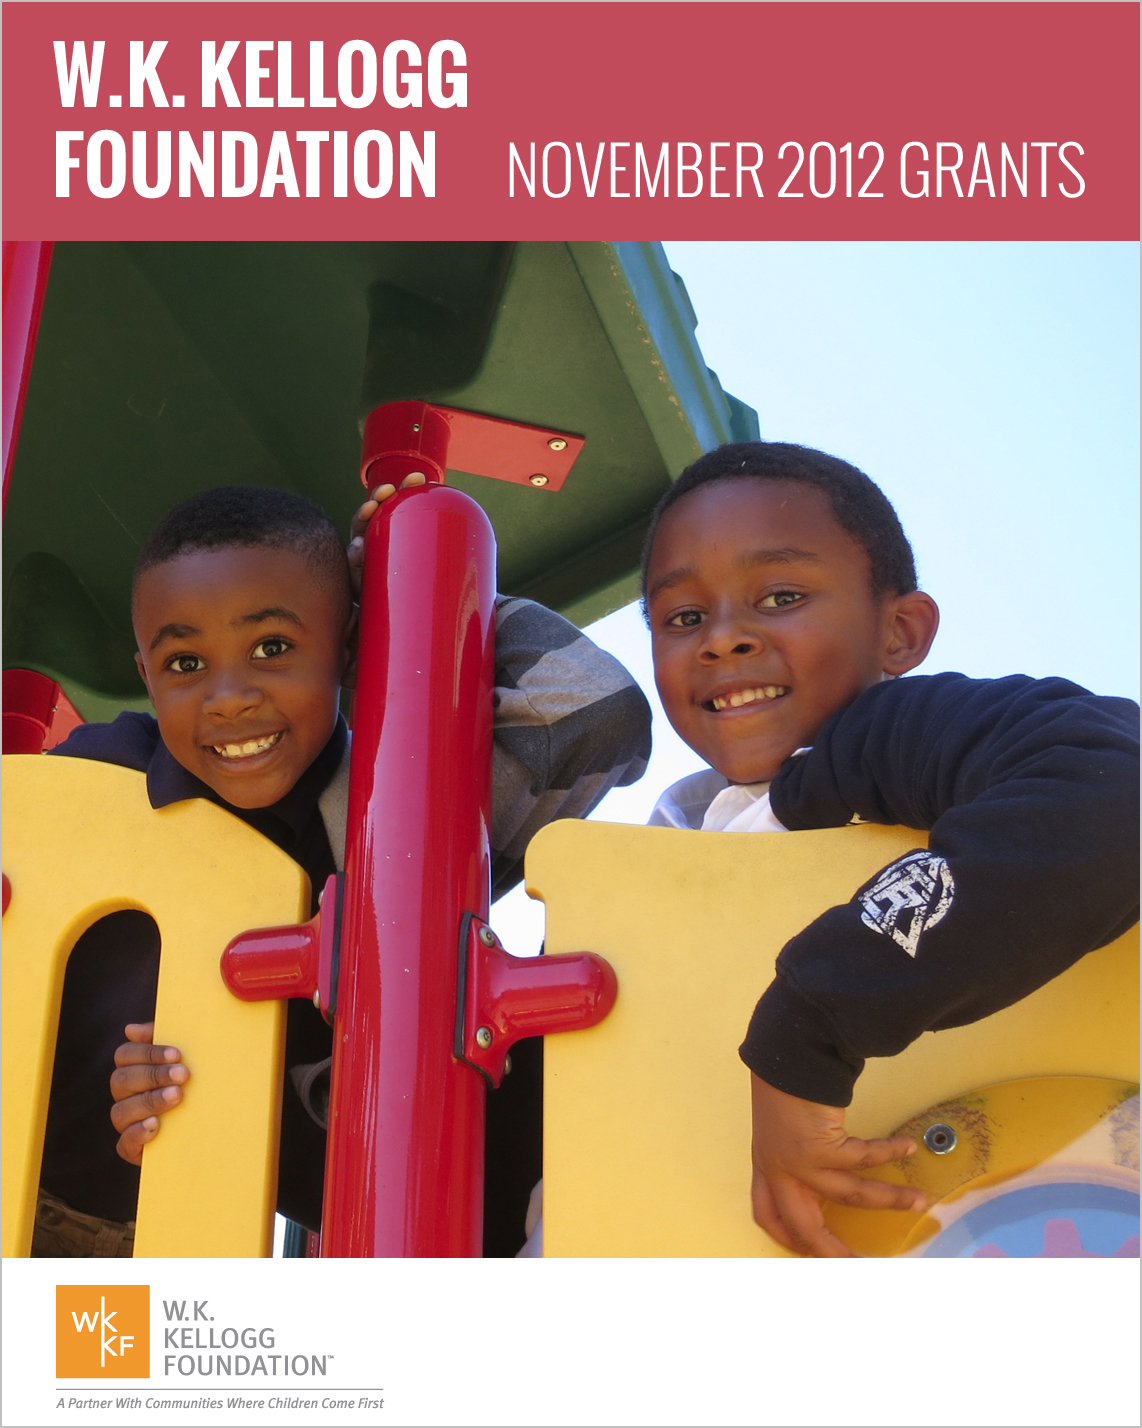 W.K. Kellogg Foundation Grants - November 2012